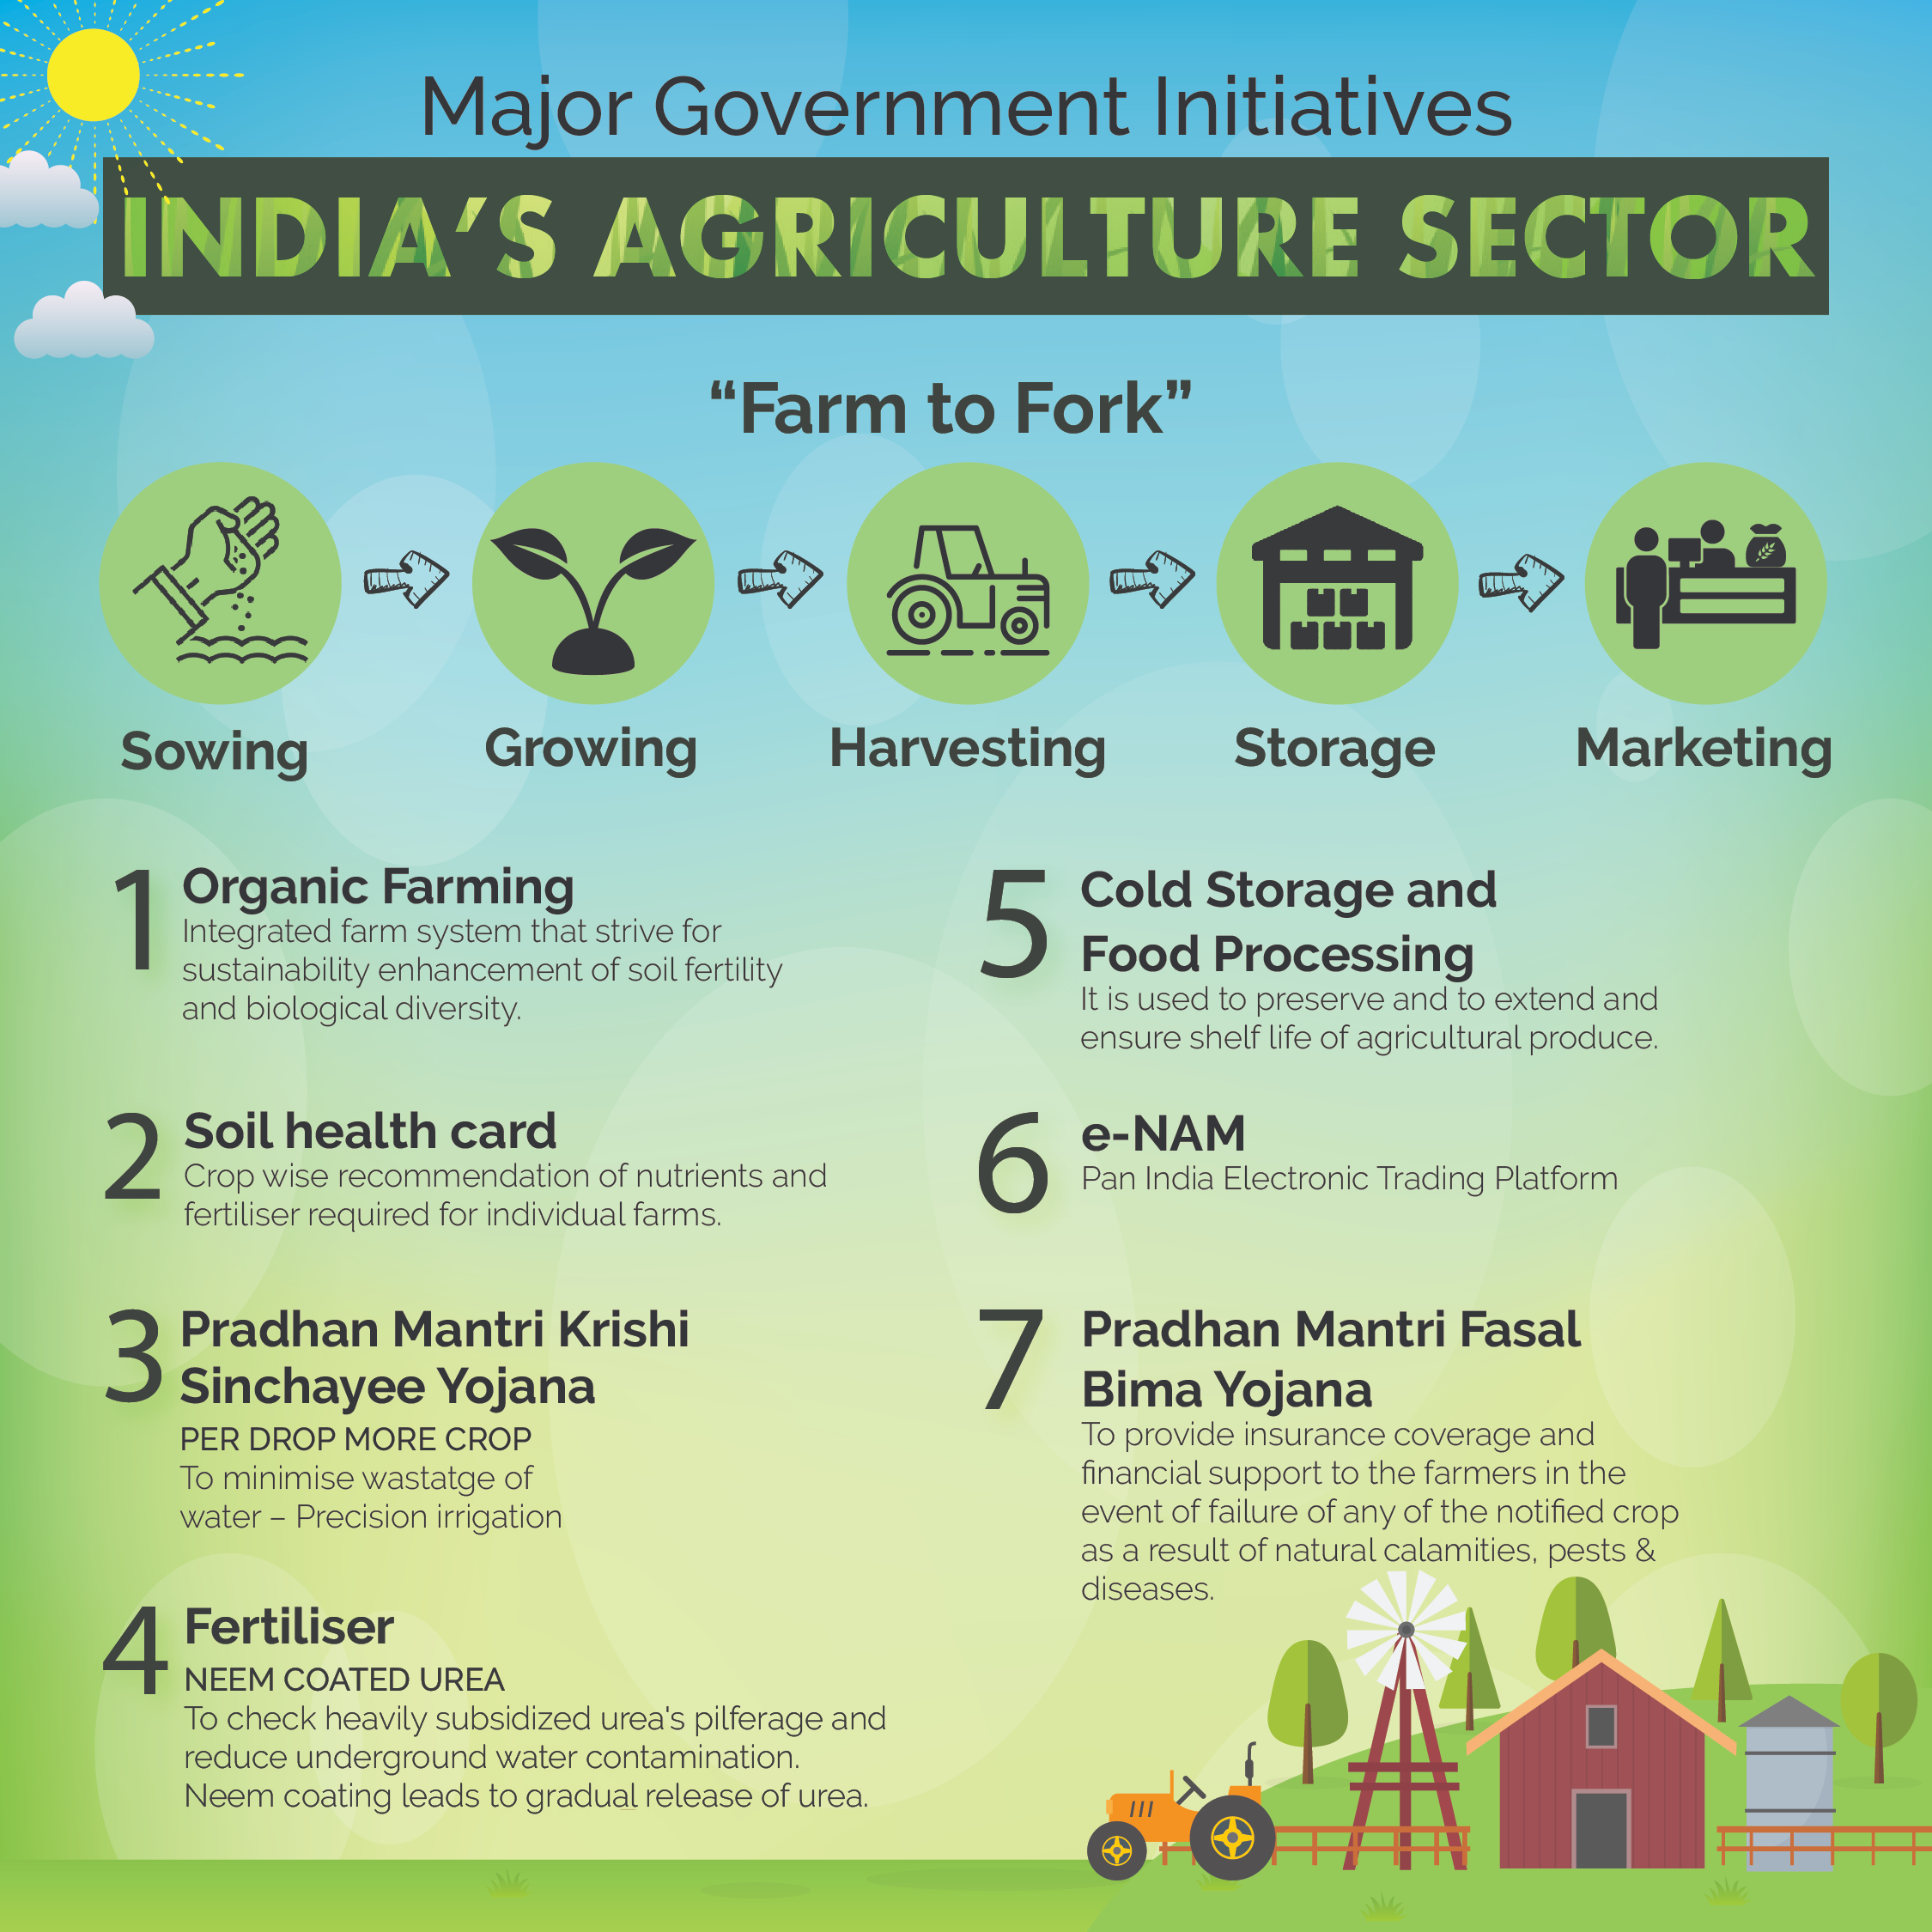 e-NAM - The role of e Nam in the agriculture sector of India